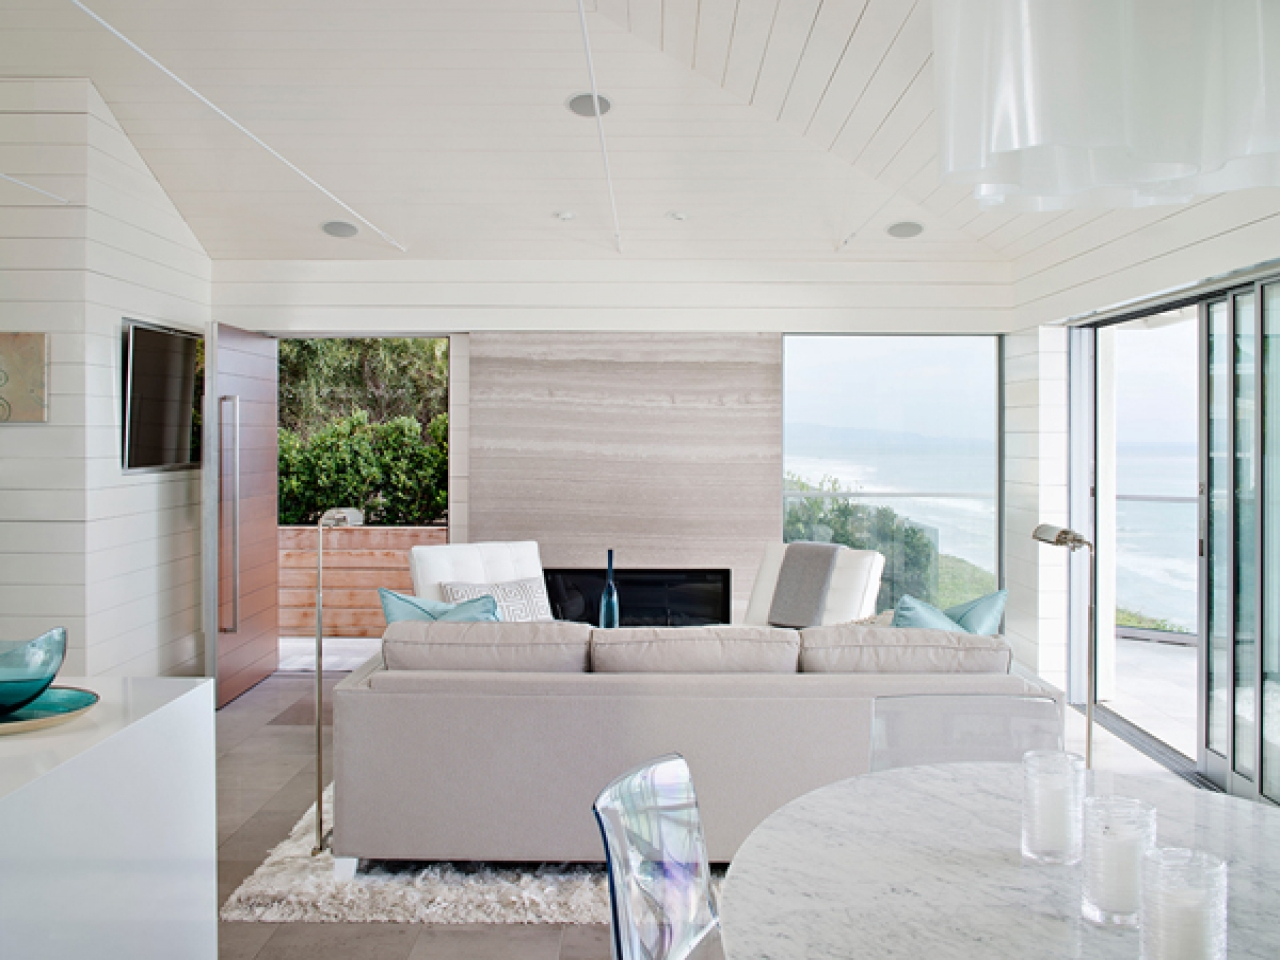 Beach House Interior Design Photos: Beach Bungalow Interior Design Small Coastal Cottage